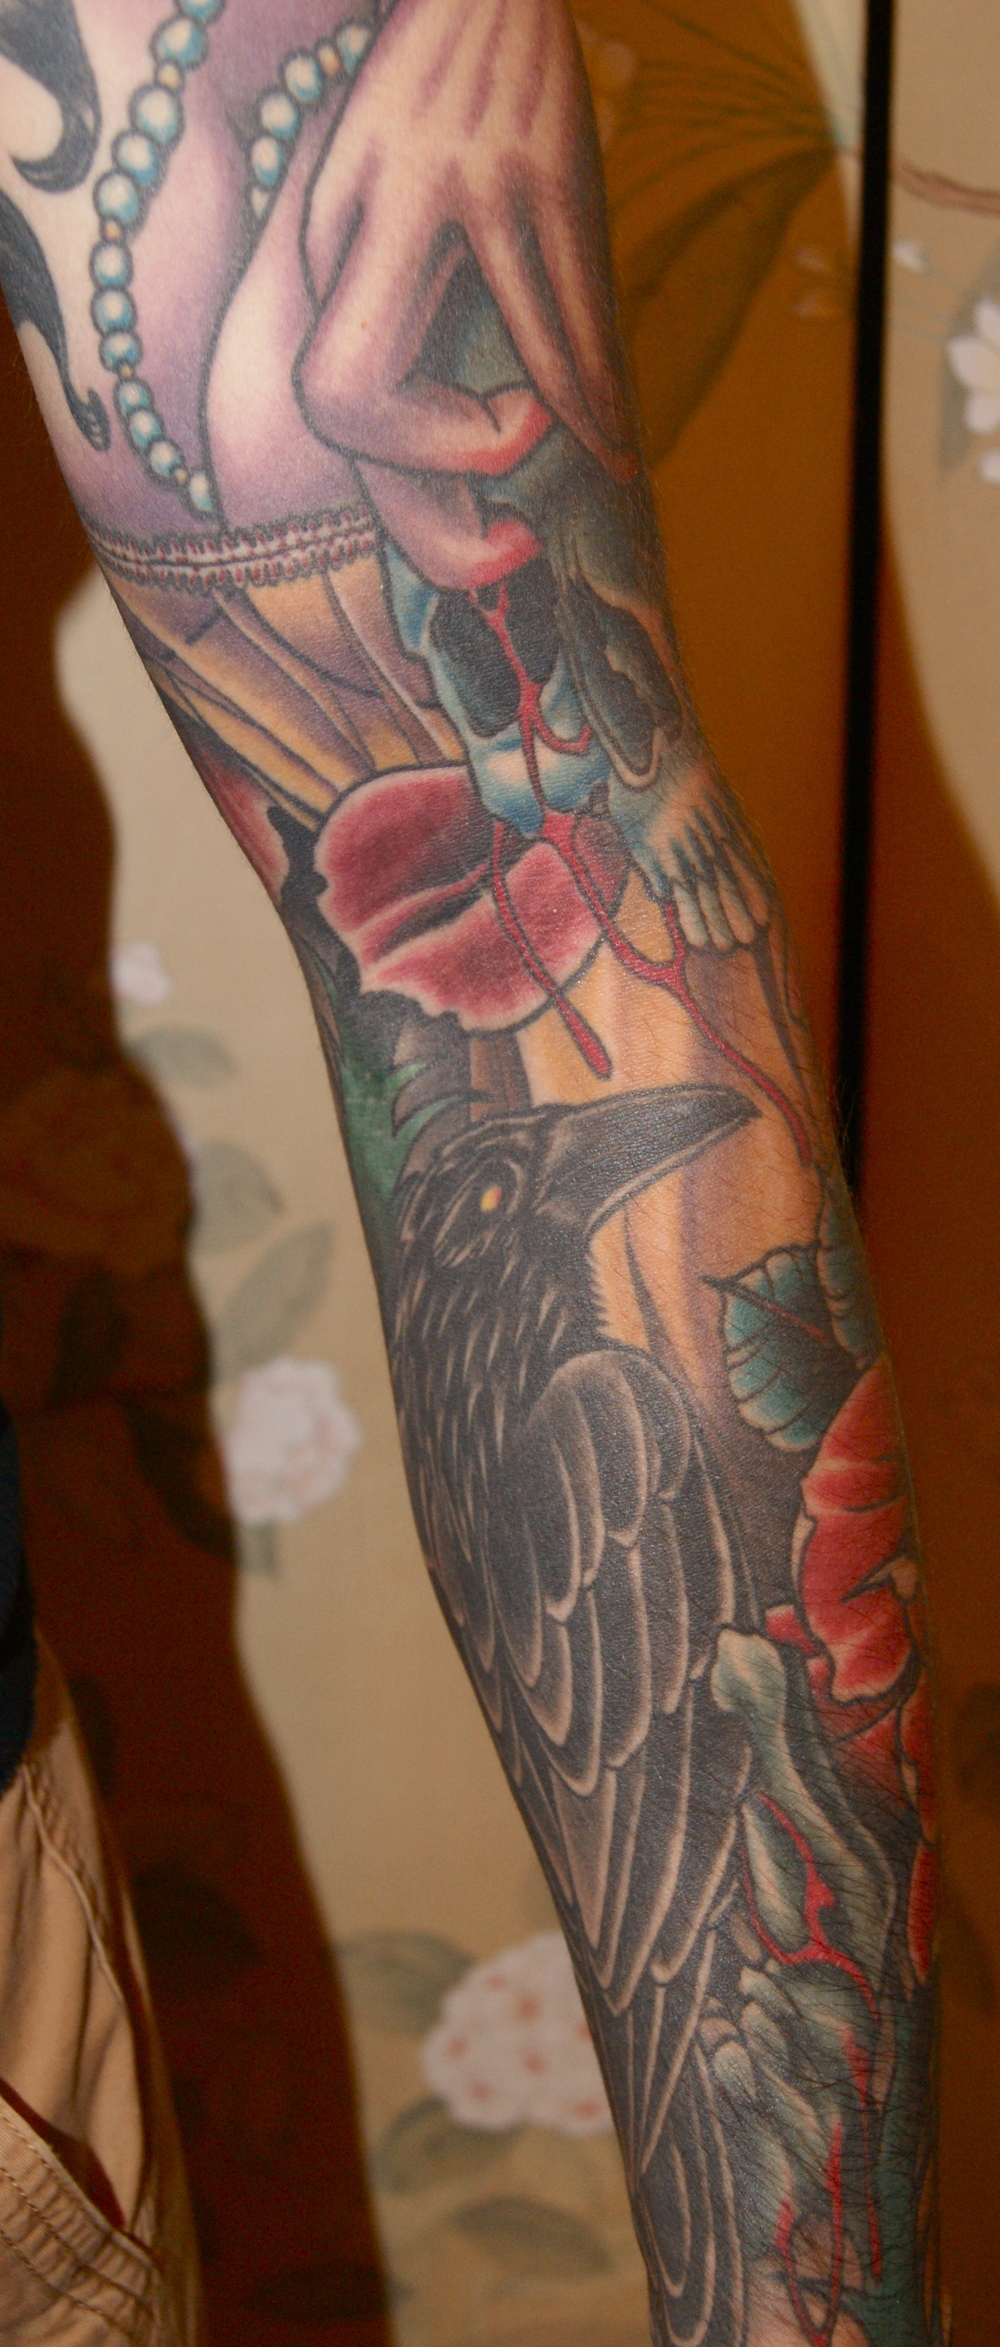 rochester-tattoo-sleeve-anthony-filo-appletattoo-dead-girl-zombie-skull-raven-roses-6.jpg